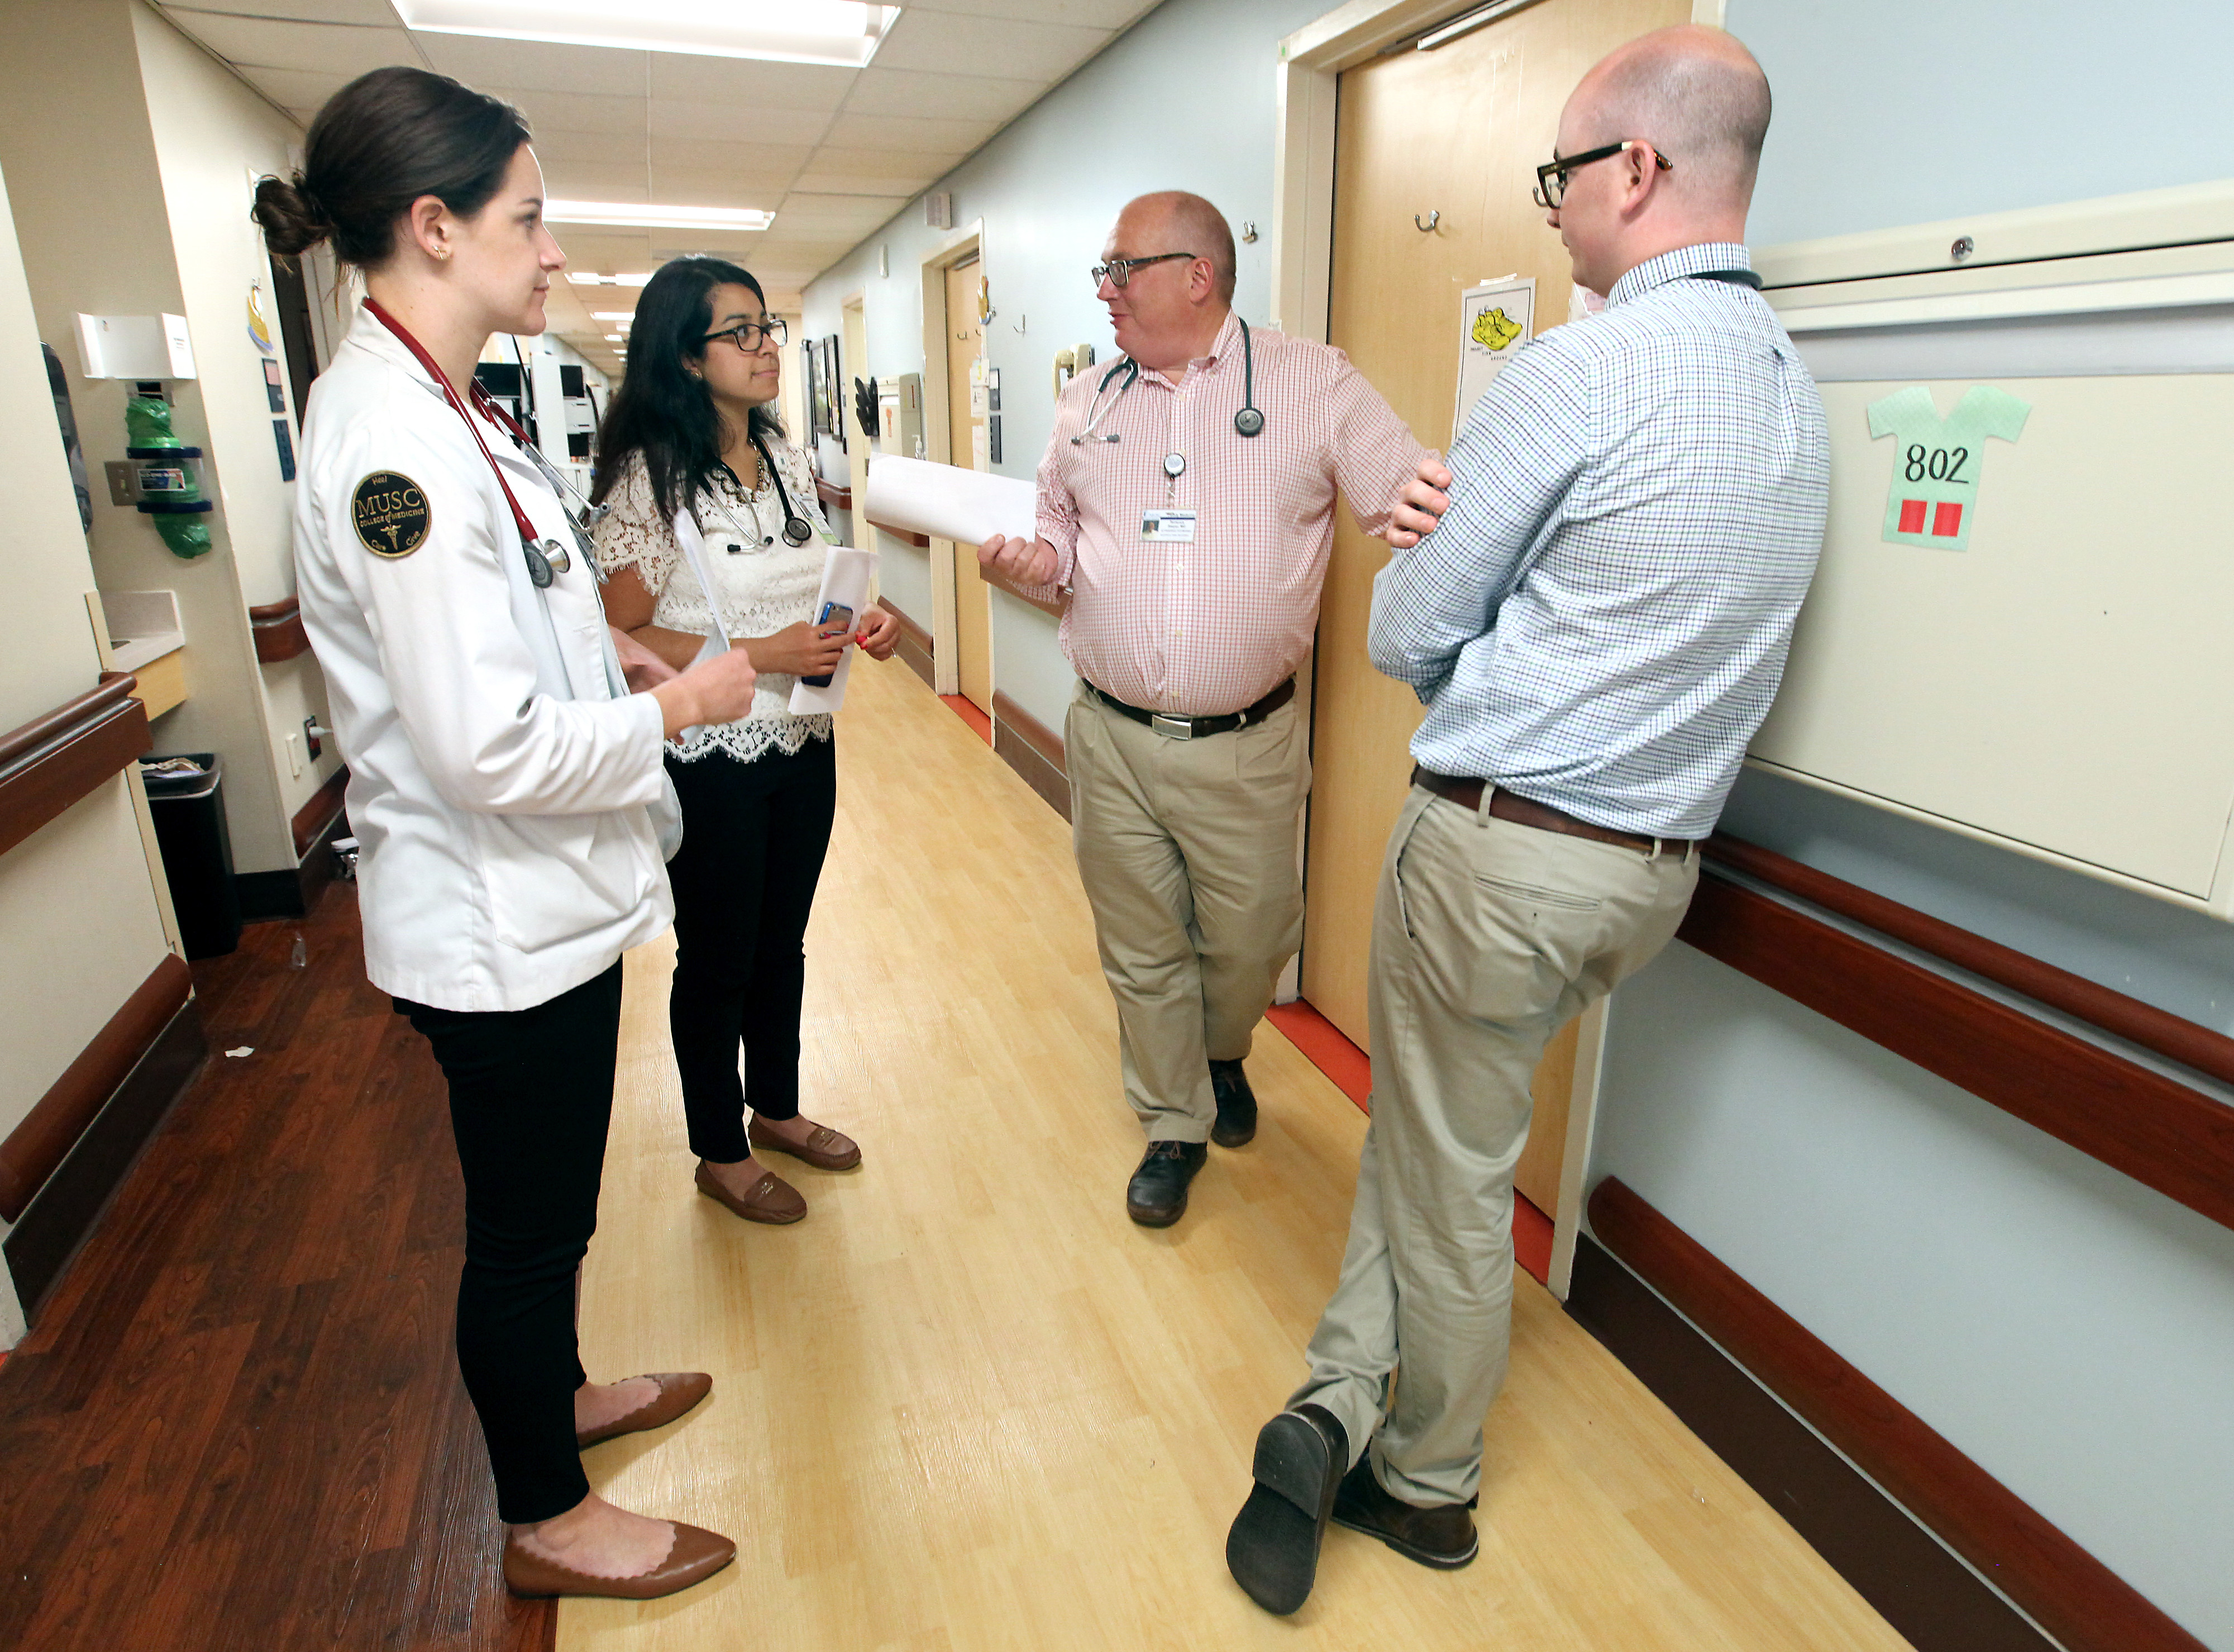 Dr. Terrence Steyer rounds with family medicine residents at MUSC.